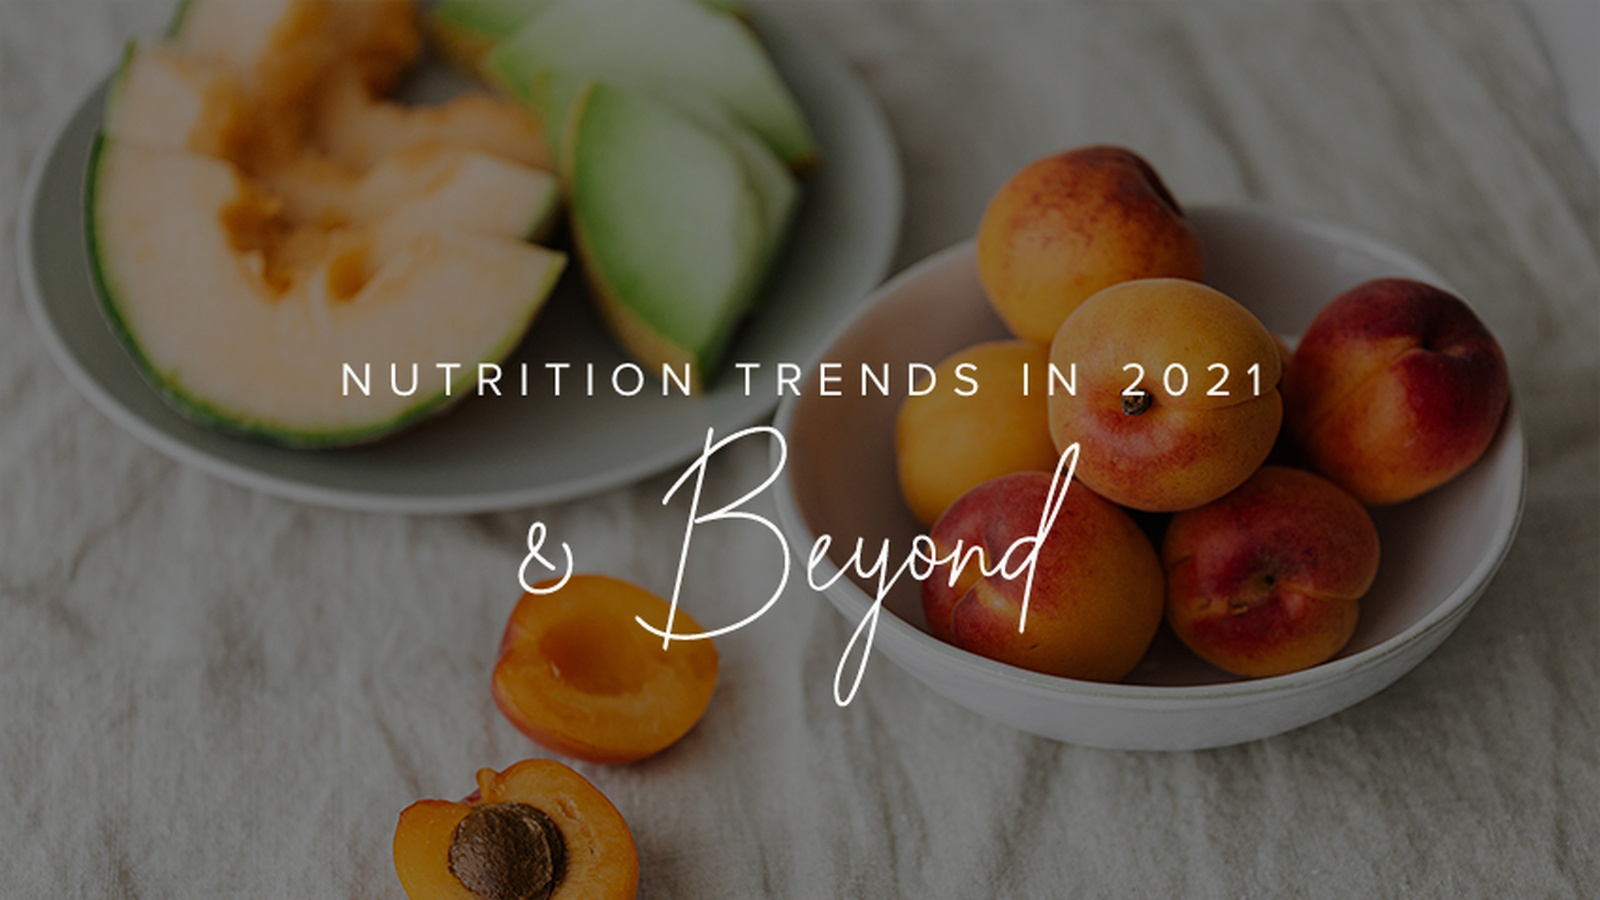 Nutrition Trends in 2021 & Beyond